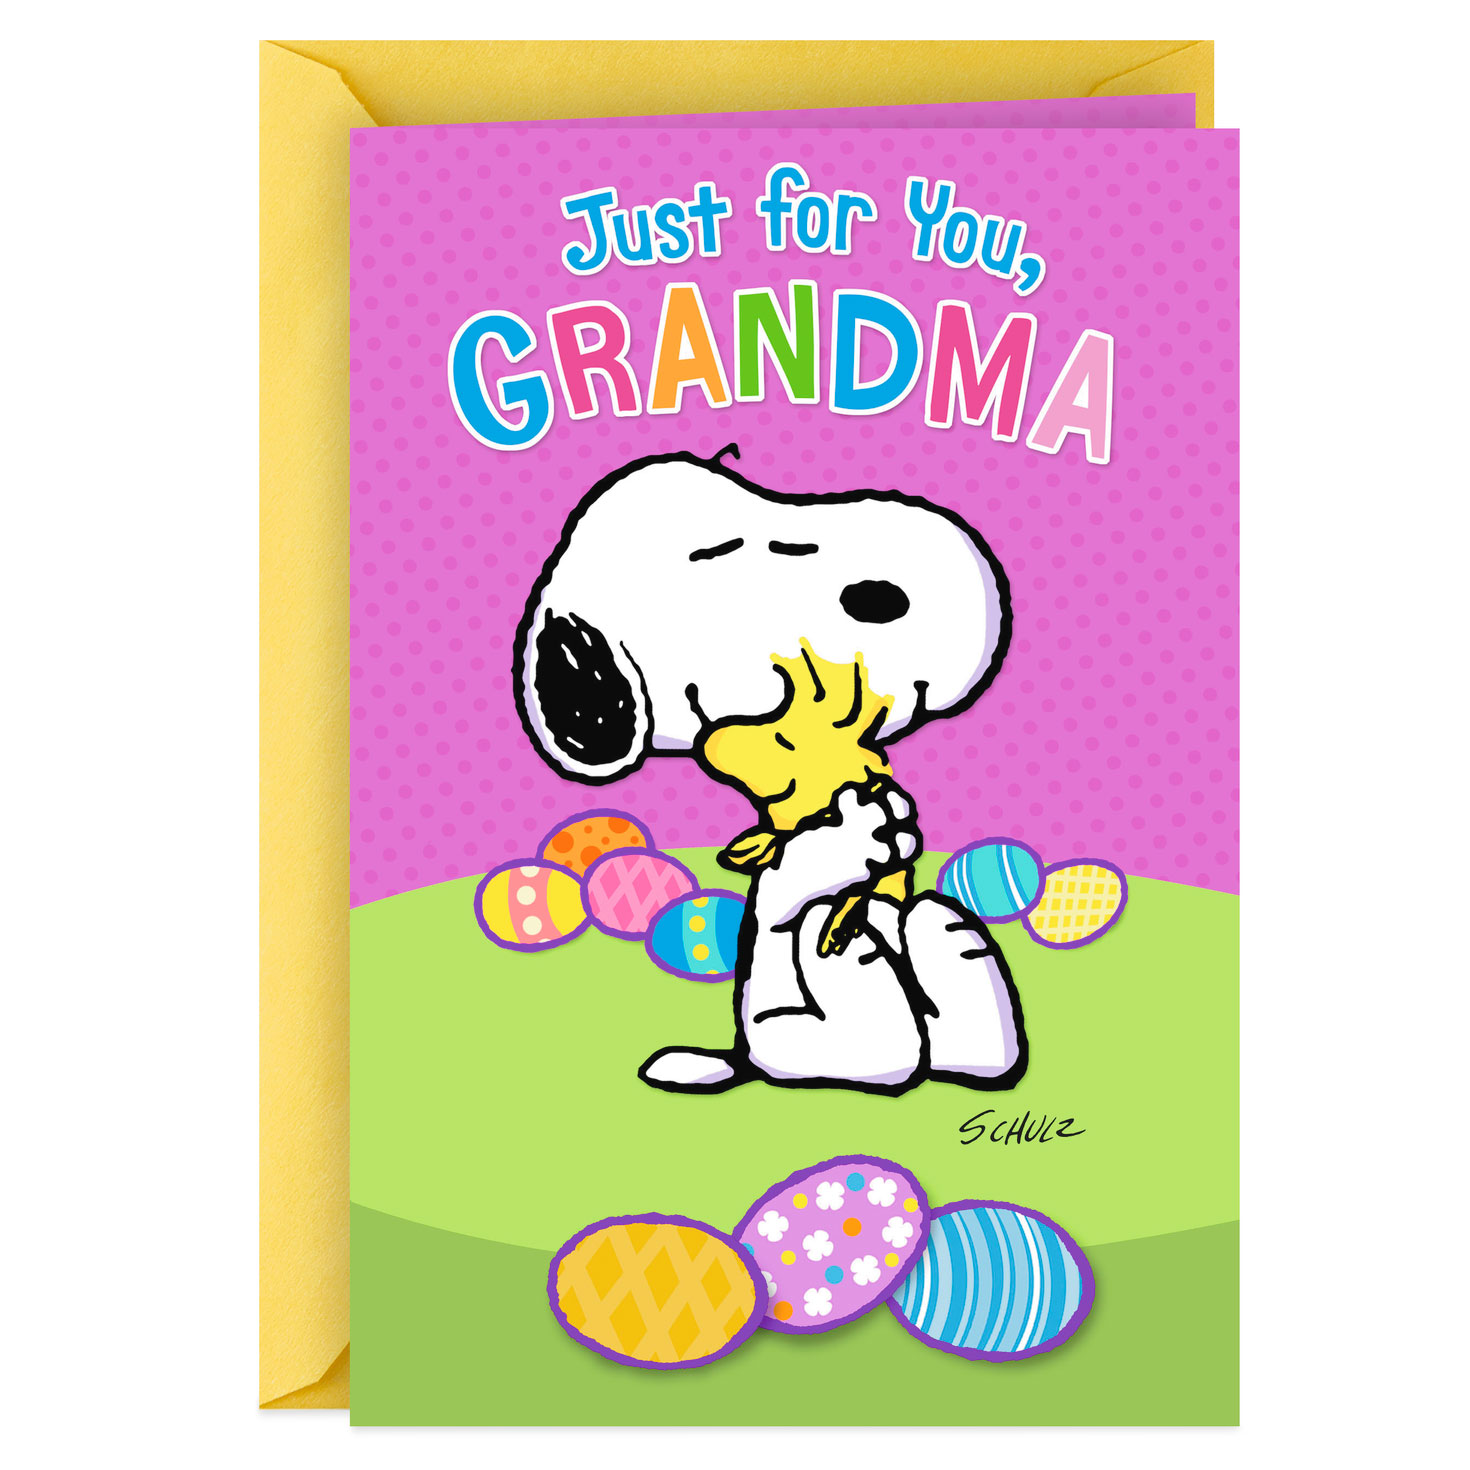 PEANUTS Snoopy Woodstock Hugging SCHULZ Religious Birthday Greeting Card